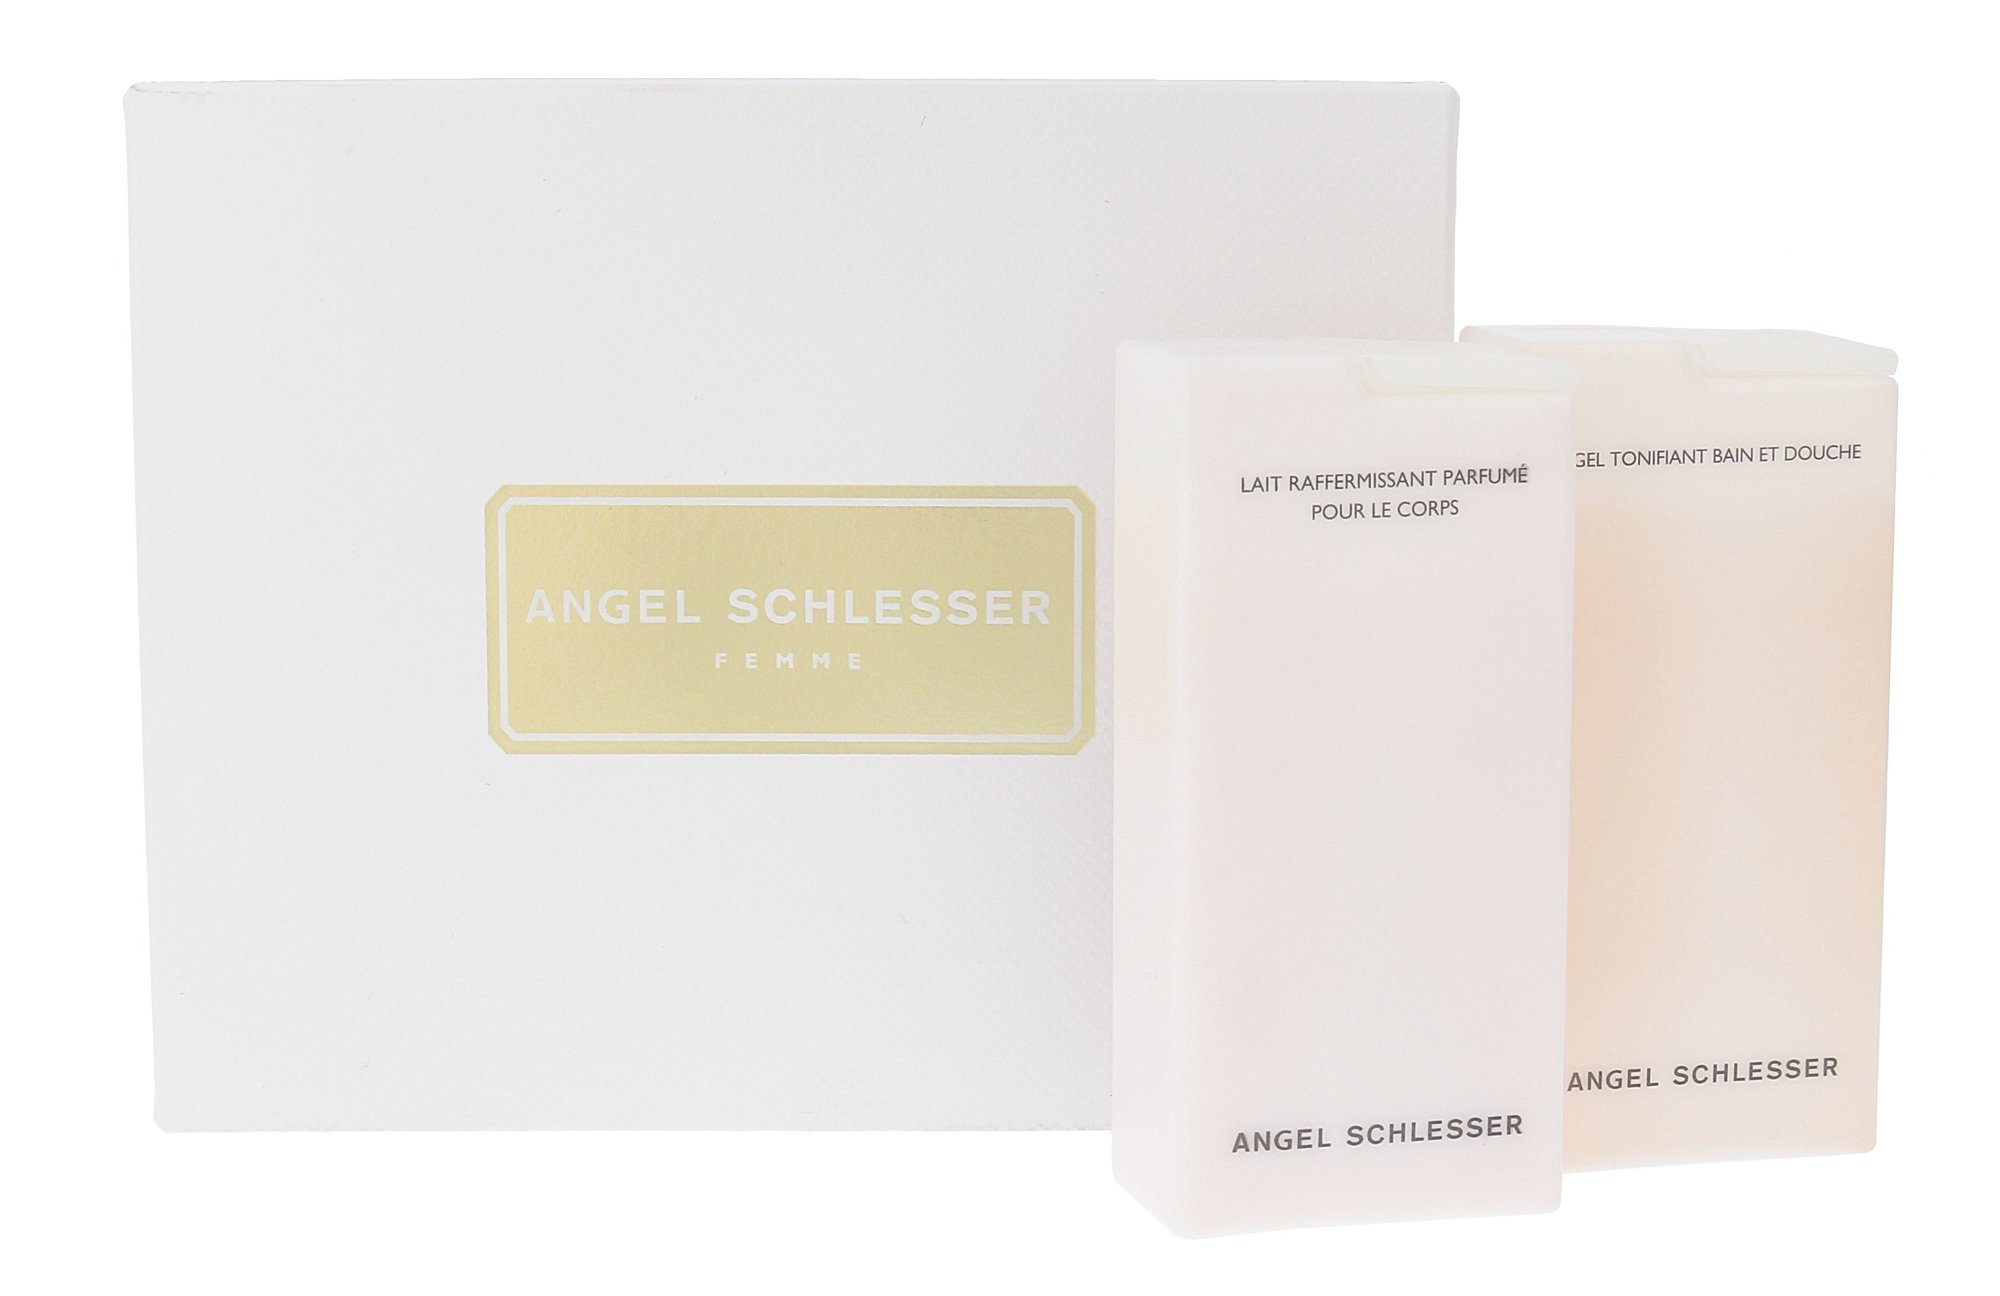 Angel Schlesser Femme Body lotion 75ml